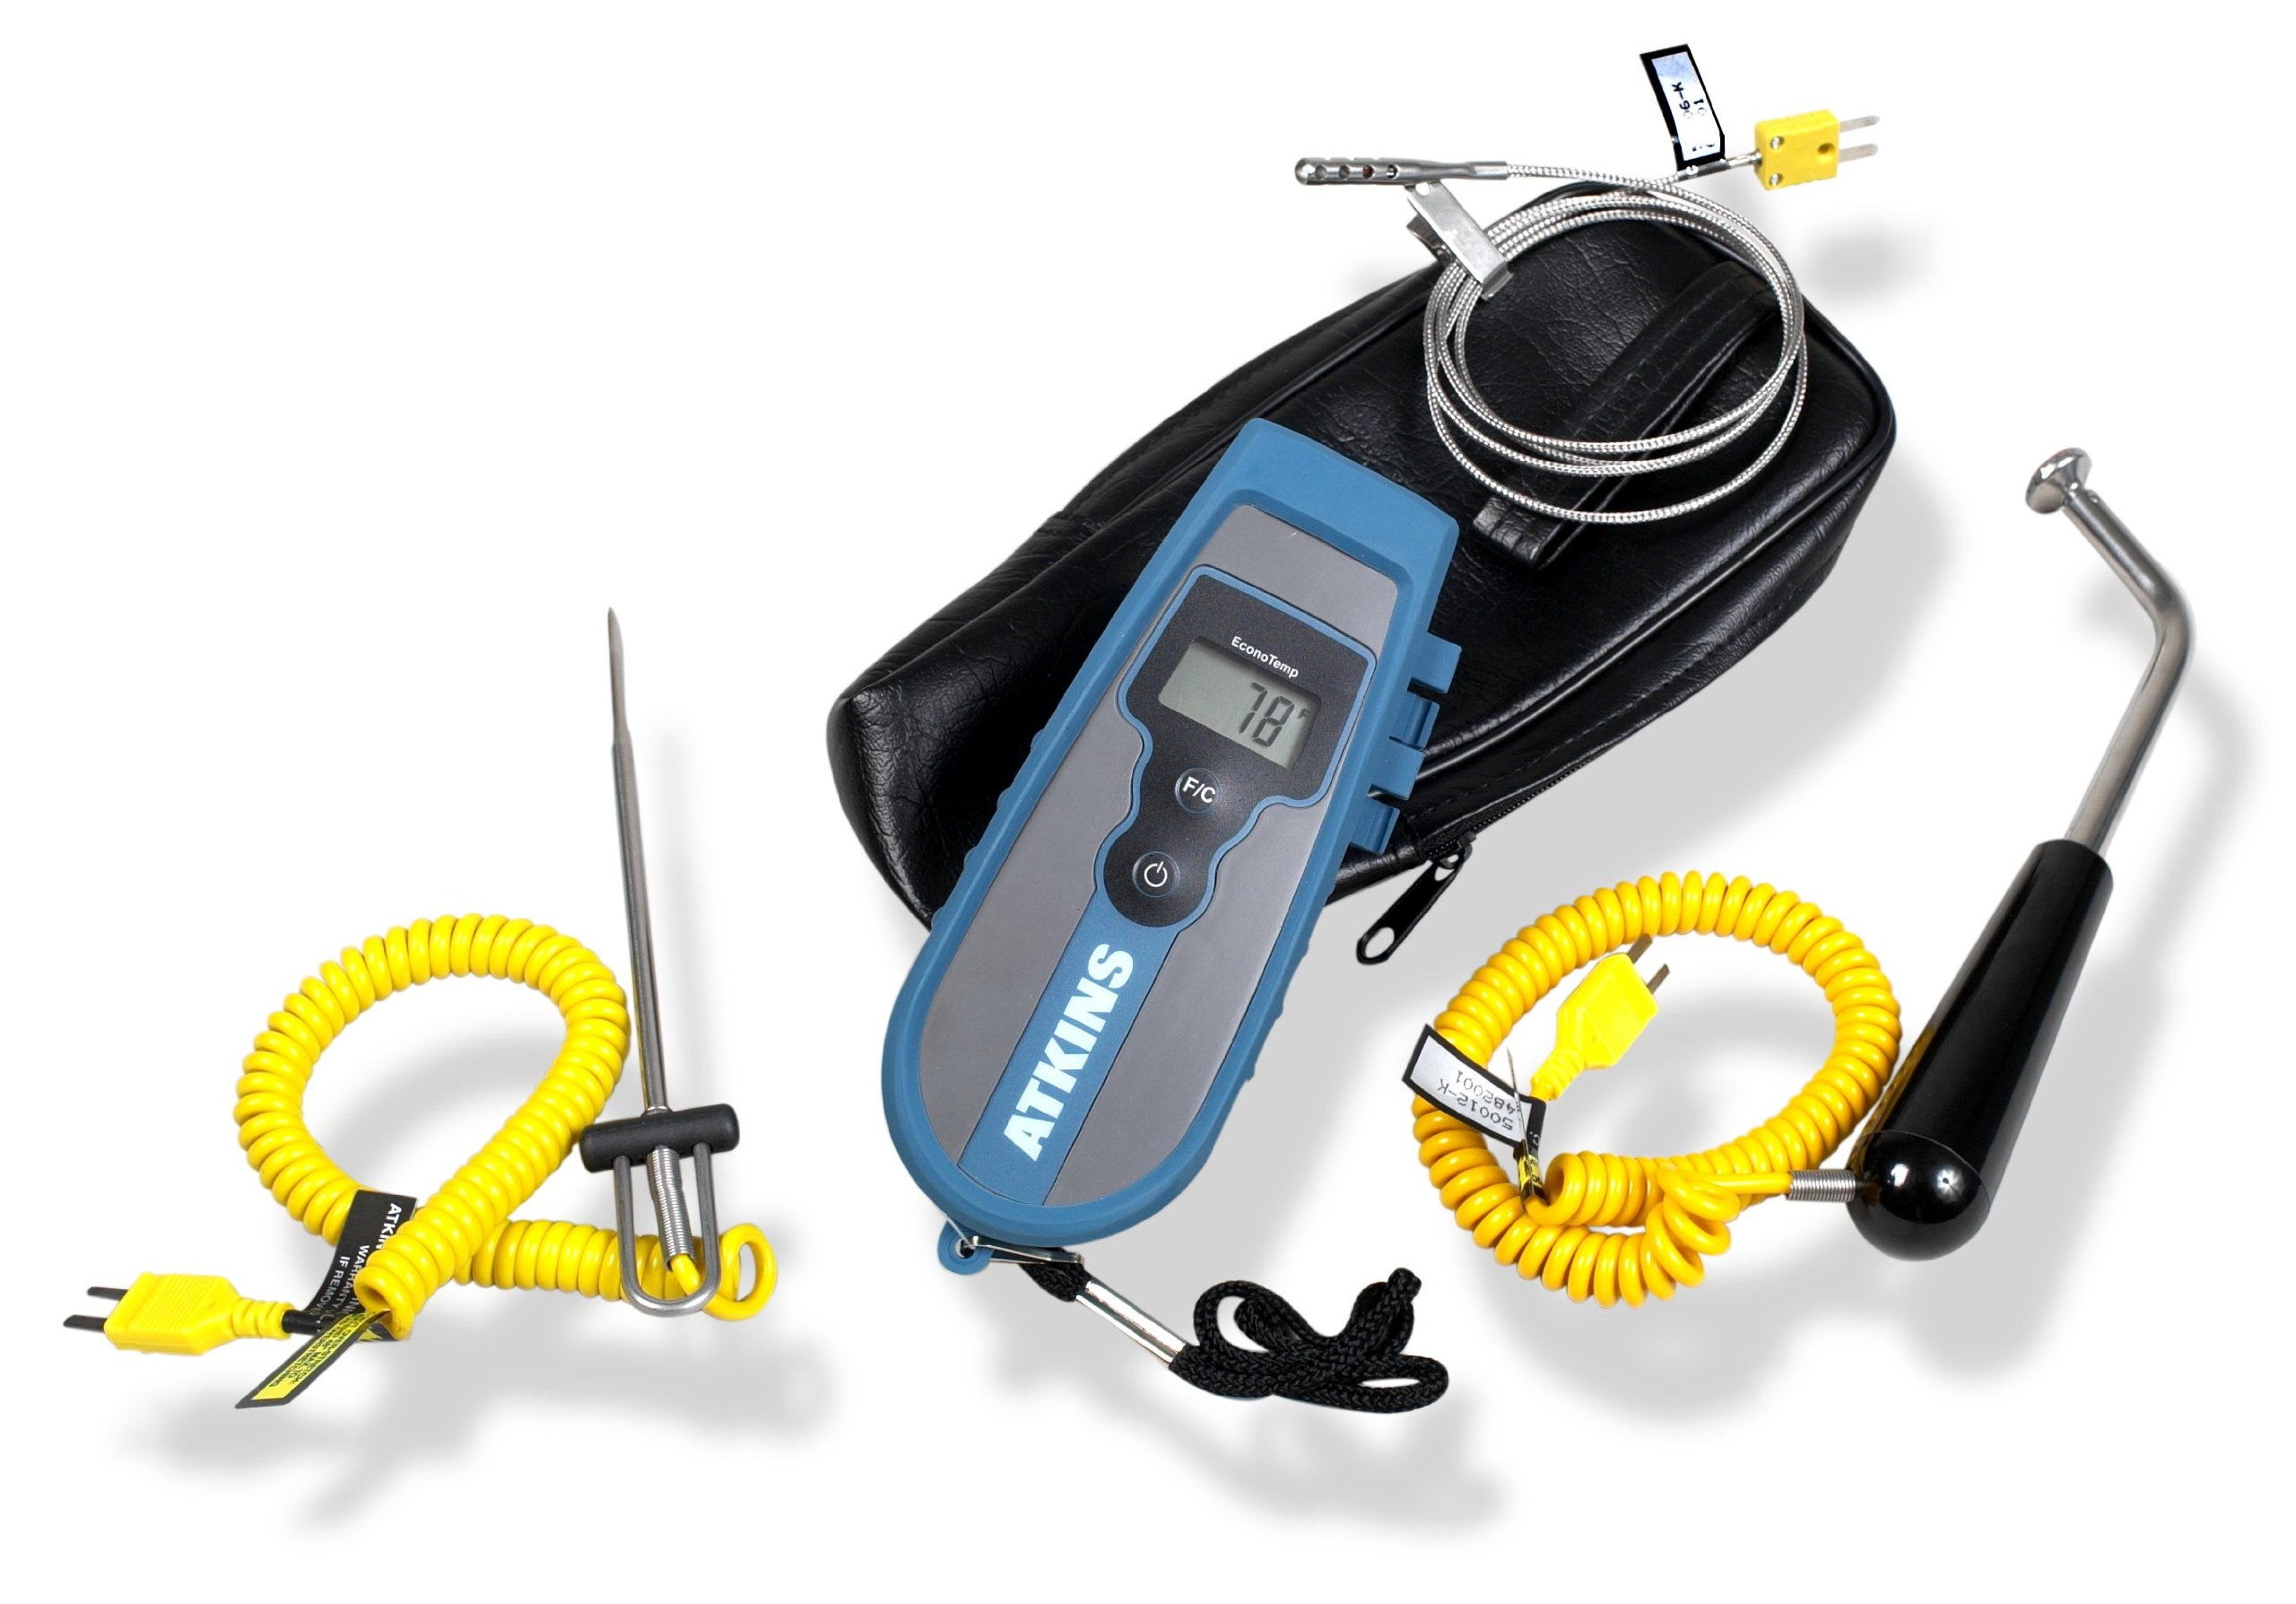 Cooper-Atkins 93013-K EconoTemp Thermocouple Kit, 3 Probes and 1 Soft Carrying Case by Cooper